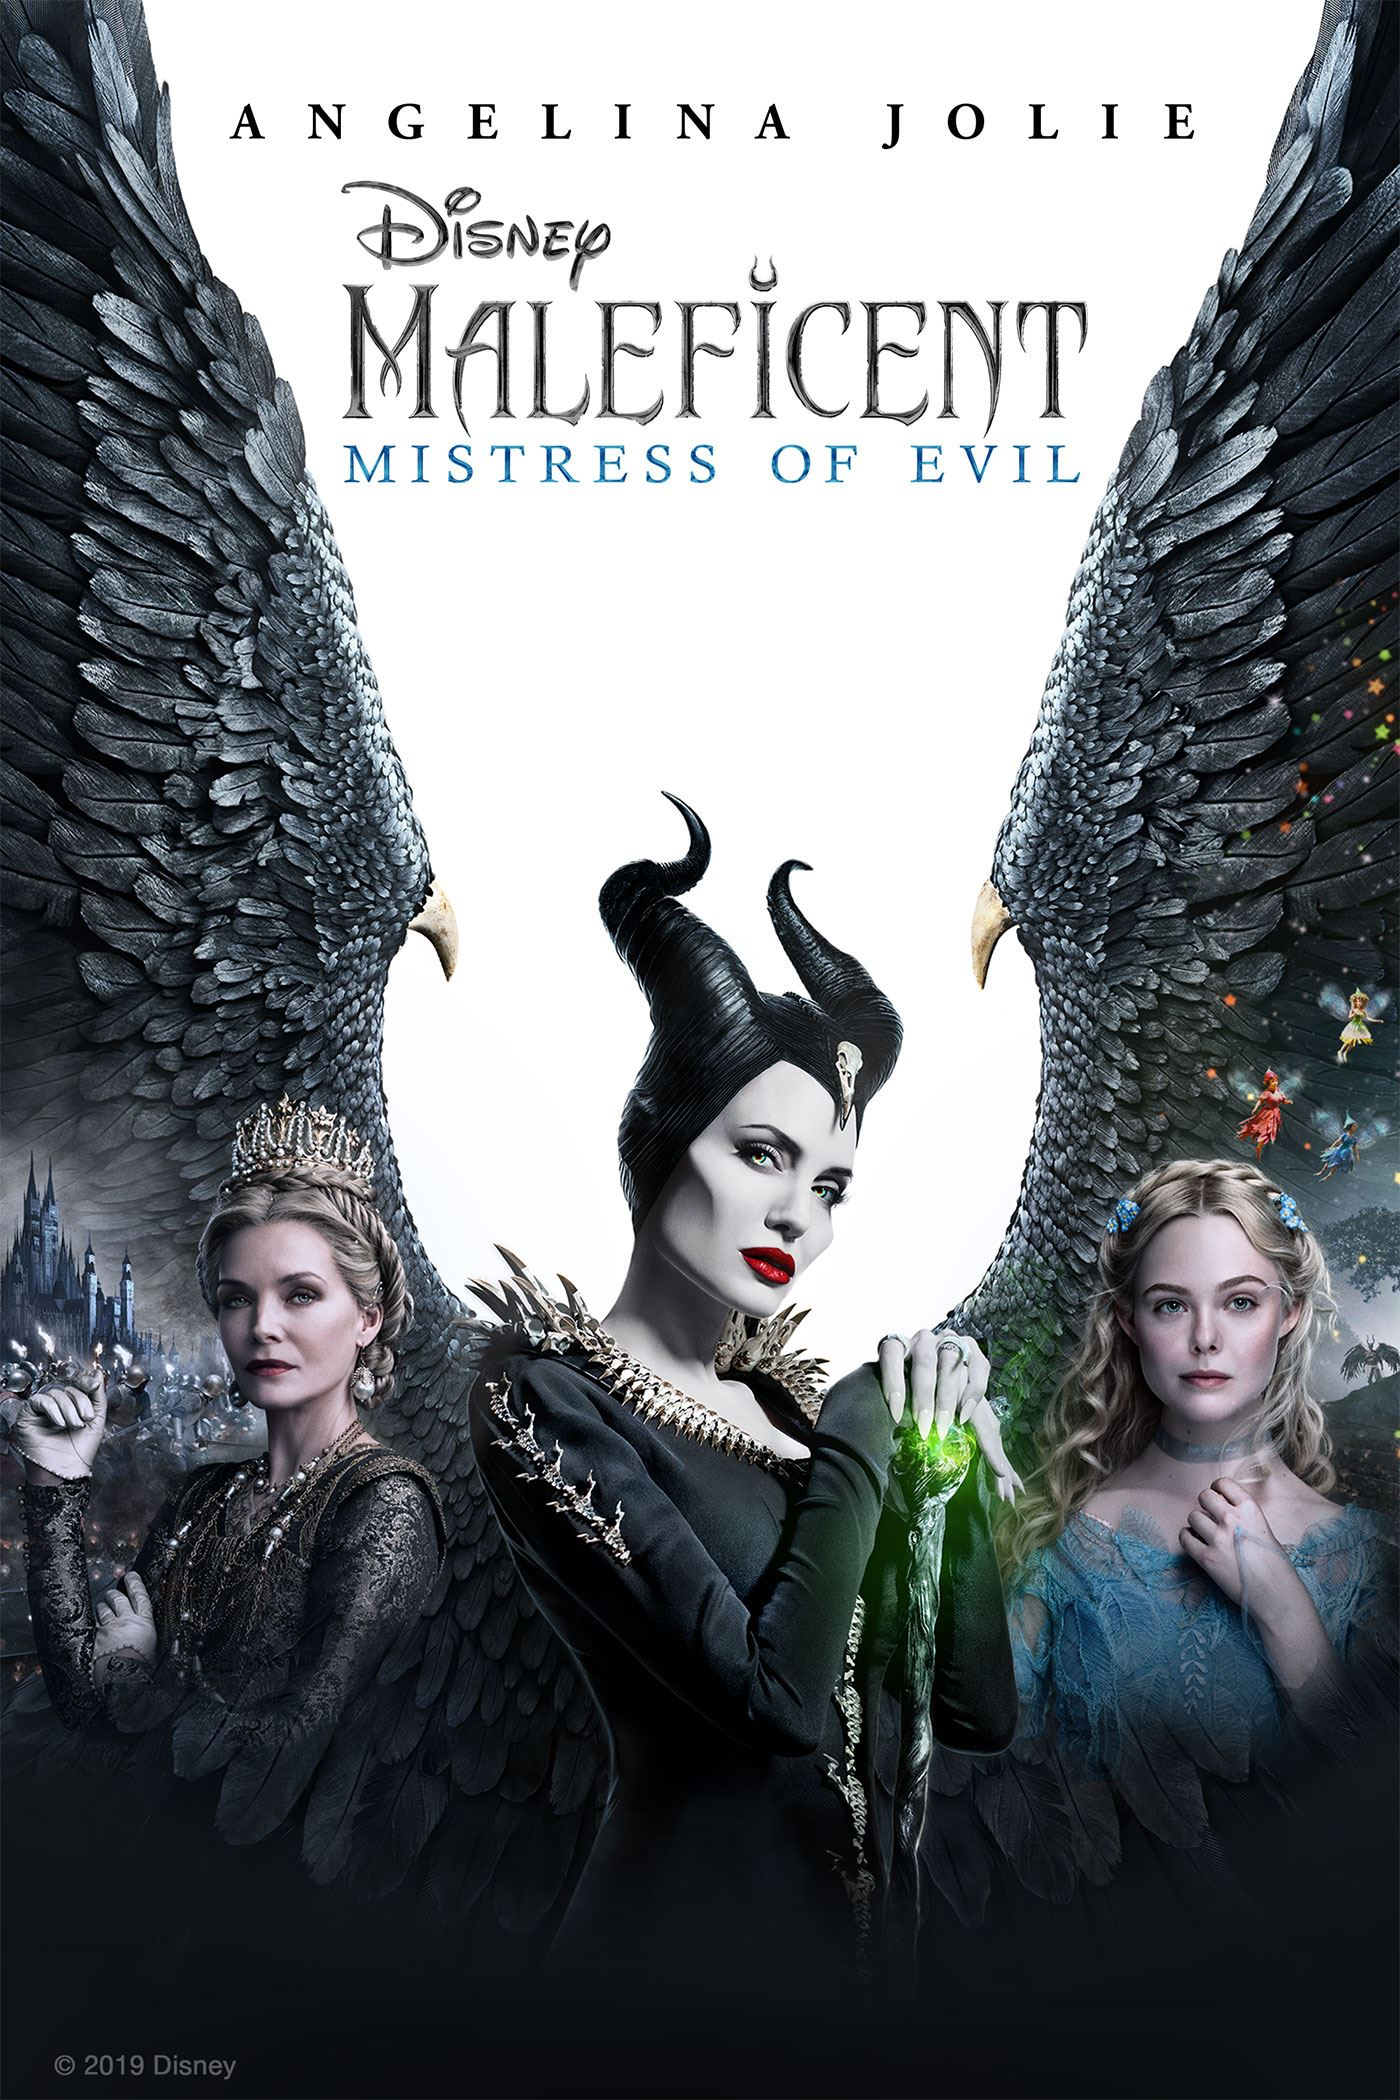 Family Movie Night at Arcade!  Maleficent: Mistress of Evil